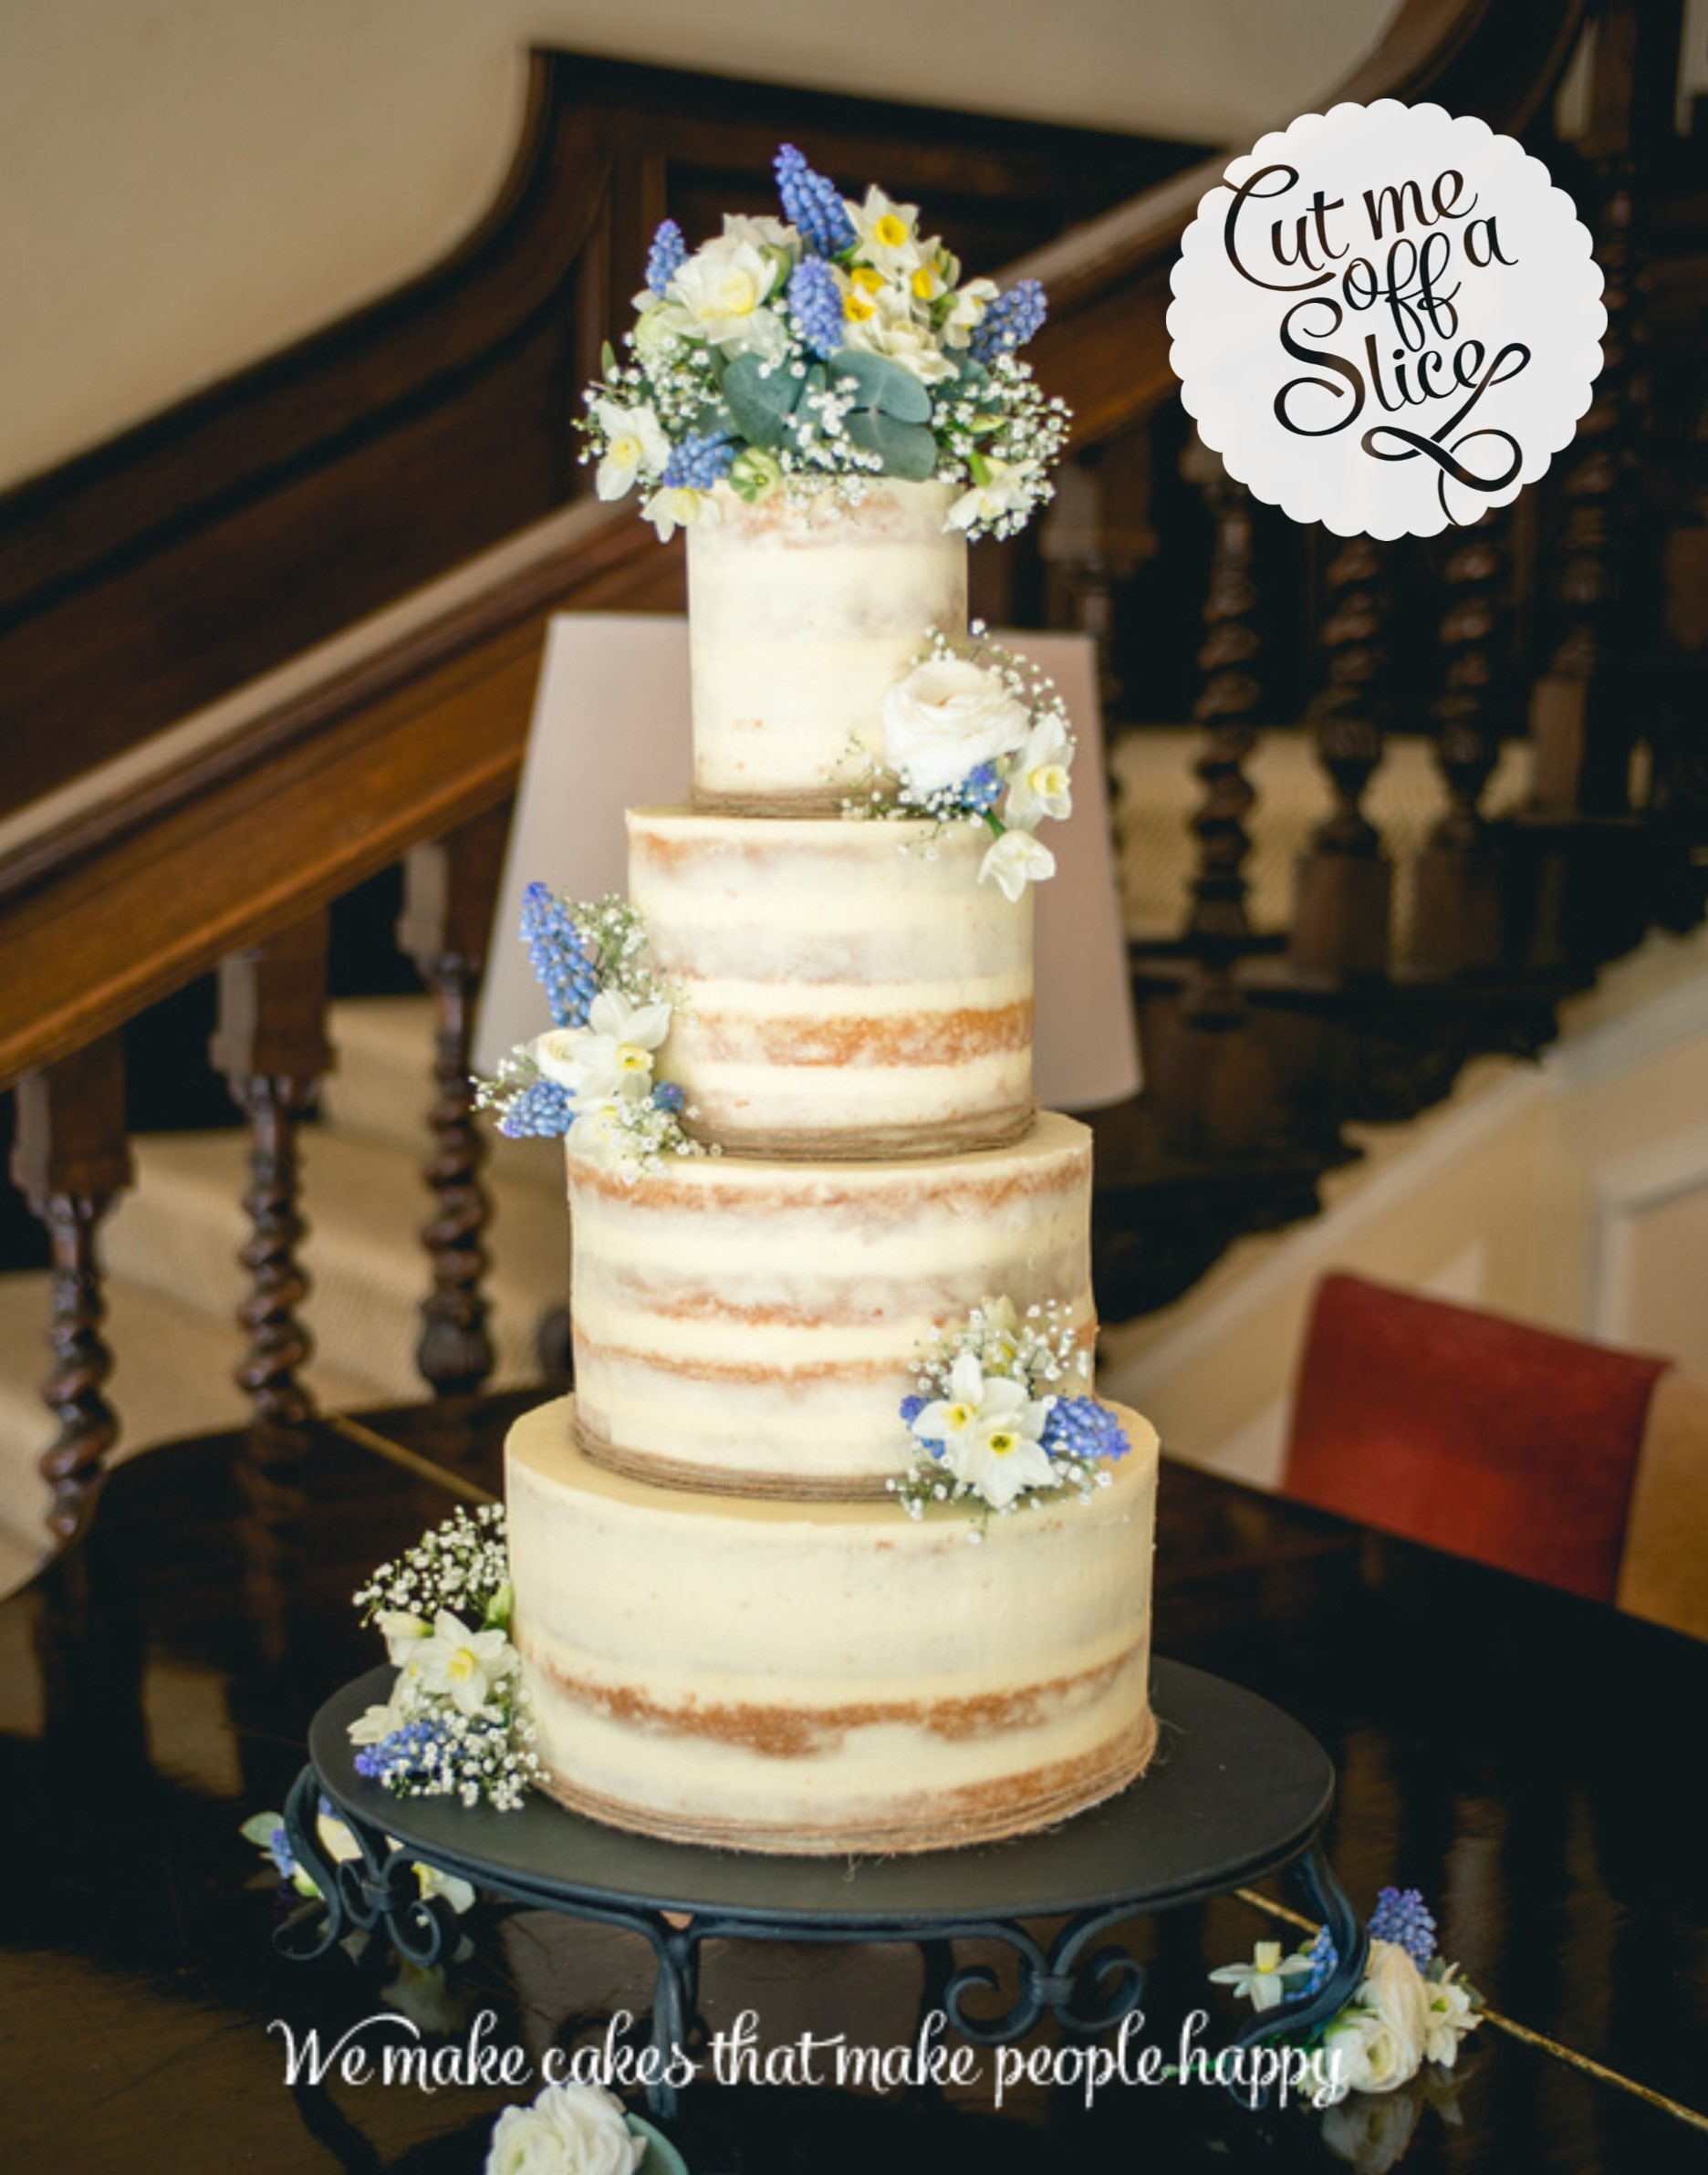 how to preserve wedding cake forever rustic inspiration cut me a slice the cake 16115